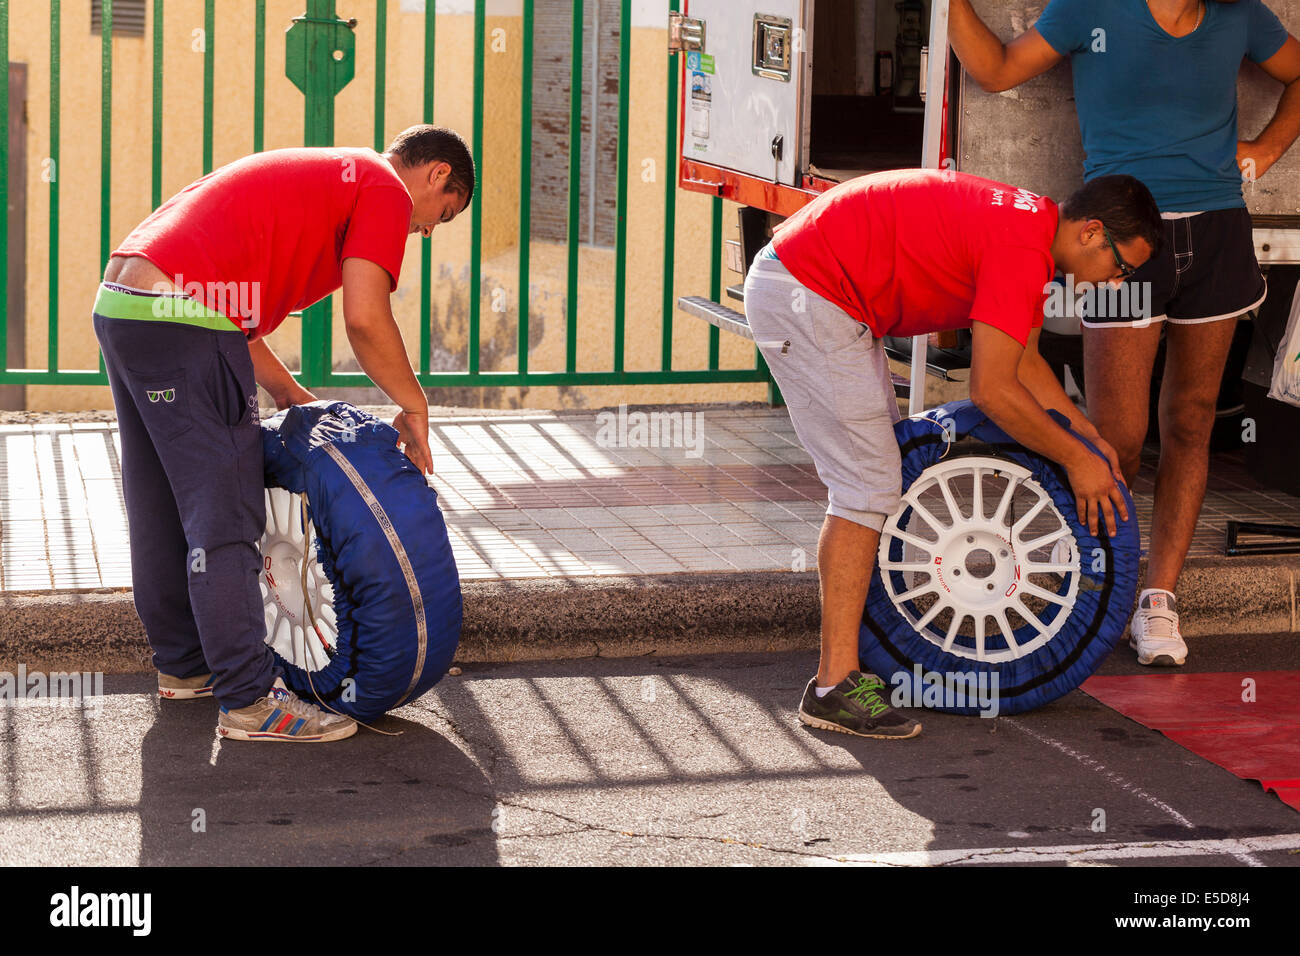 Subida a Guia rally day, pit work, and preparations for the rally. Playa San Juan, Tenerife, Canary Islands, Spain. - Stock Image